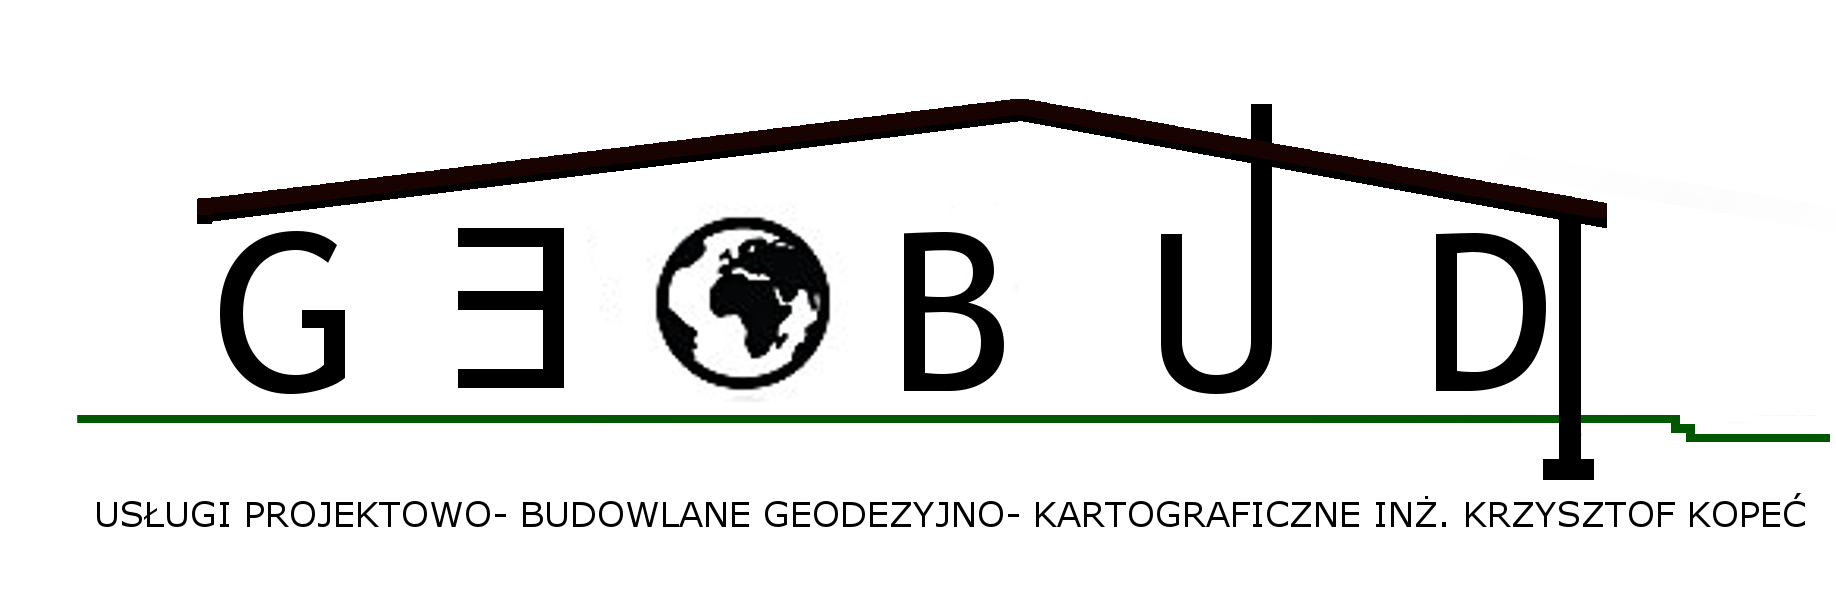 GEOBUD